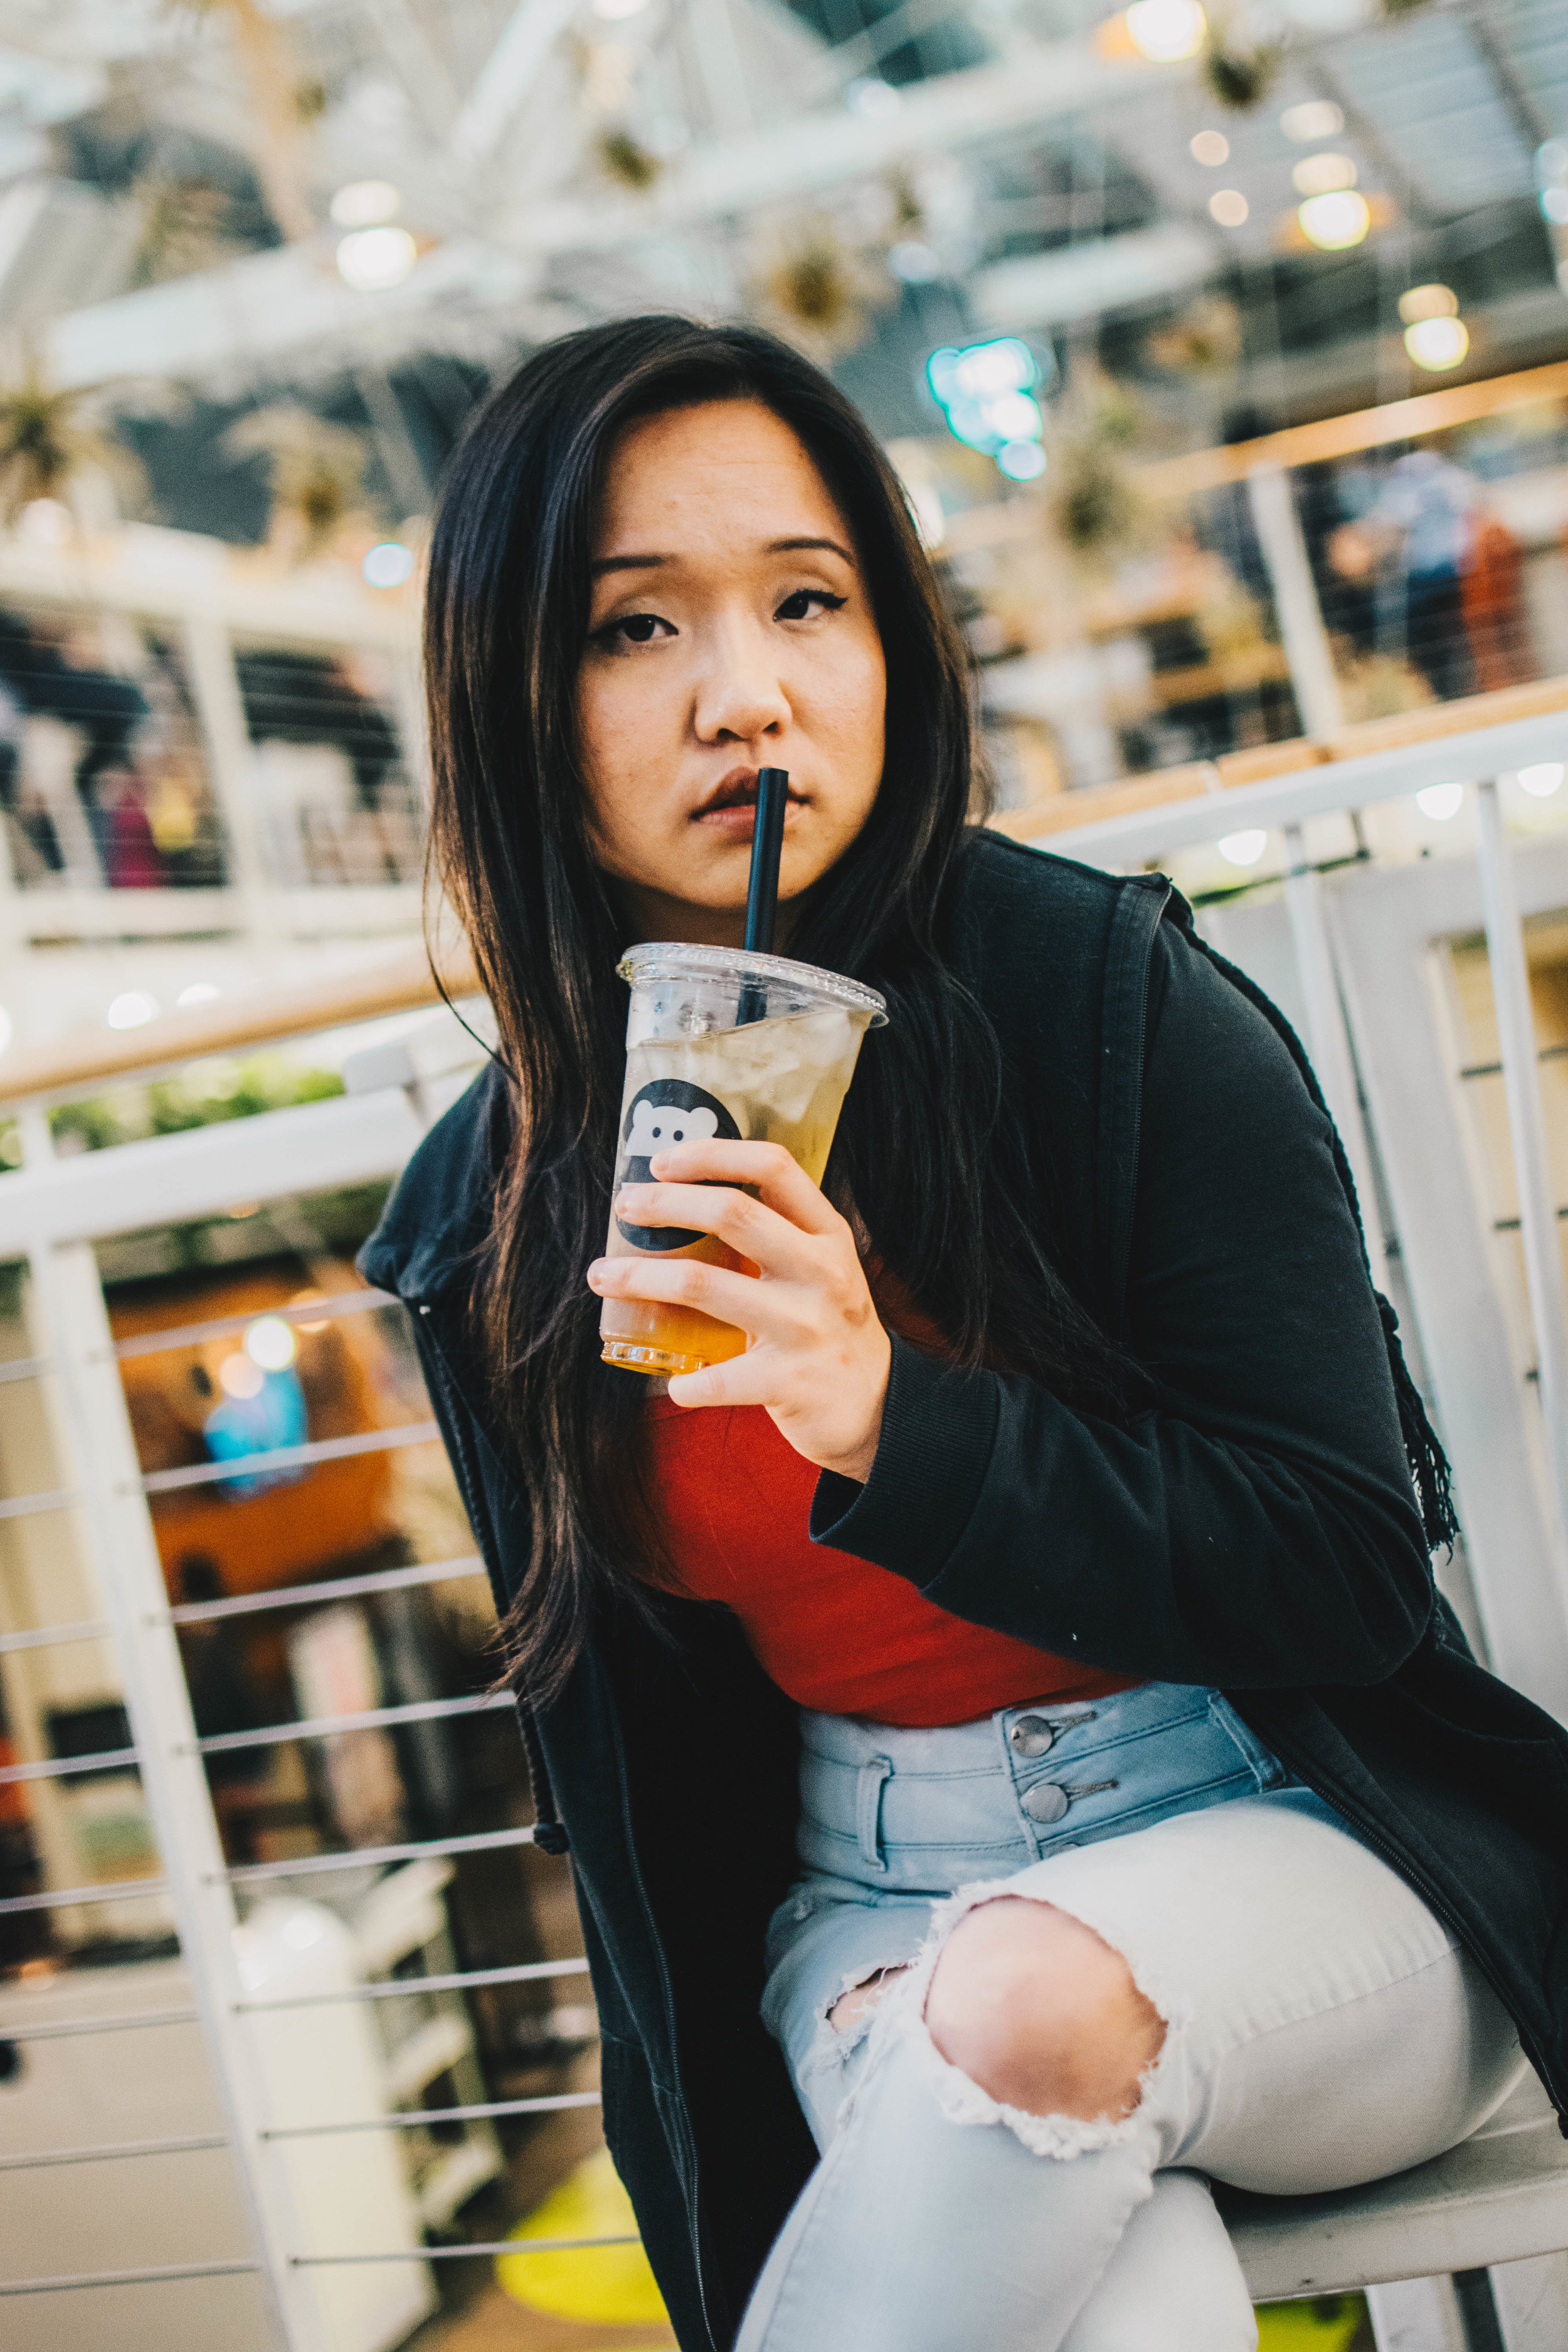 Of course you can't forget about the boba